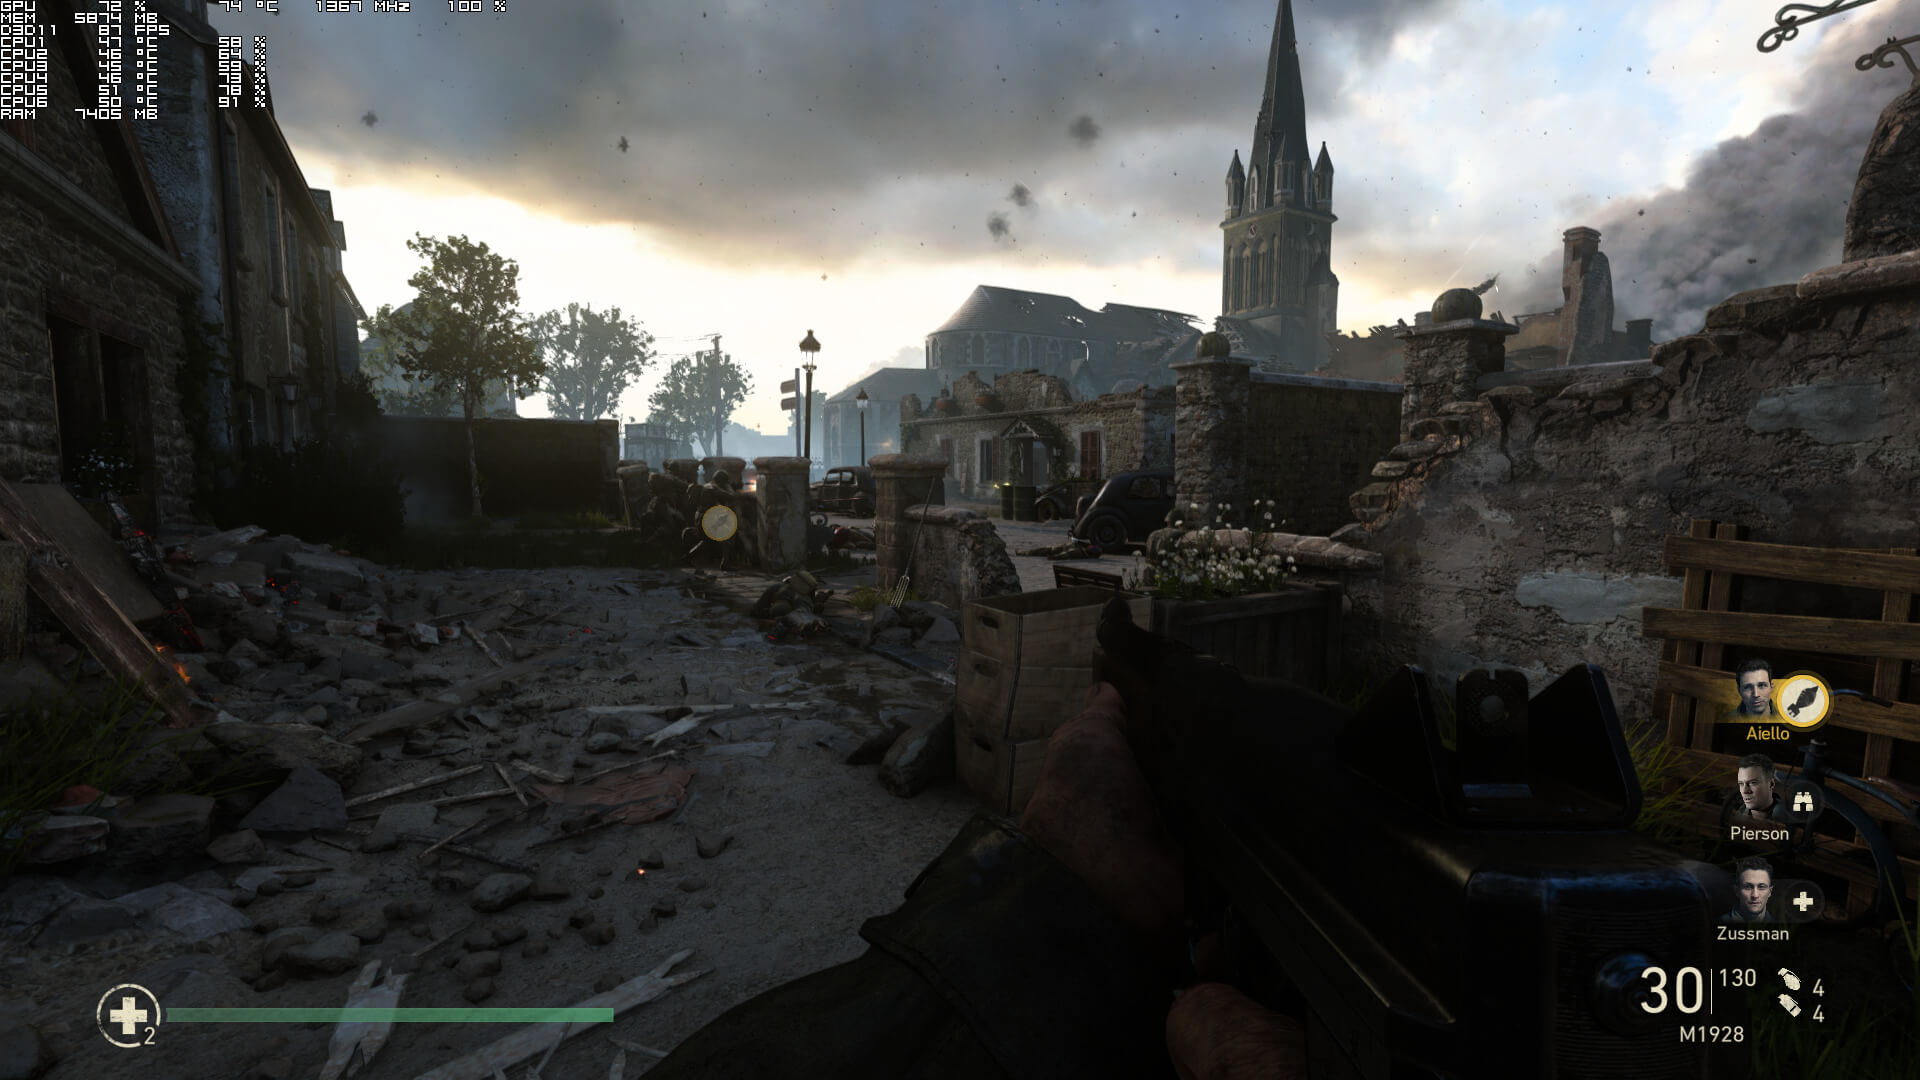 Call of Duty: WWII PC Performance Analysis - DSOGaming